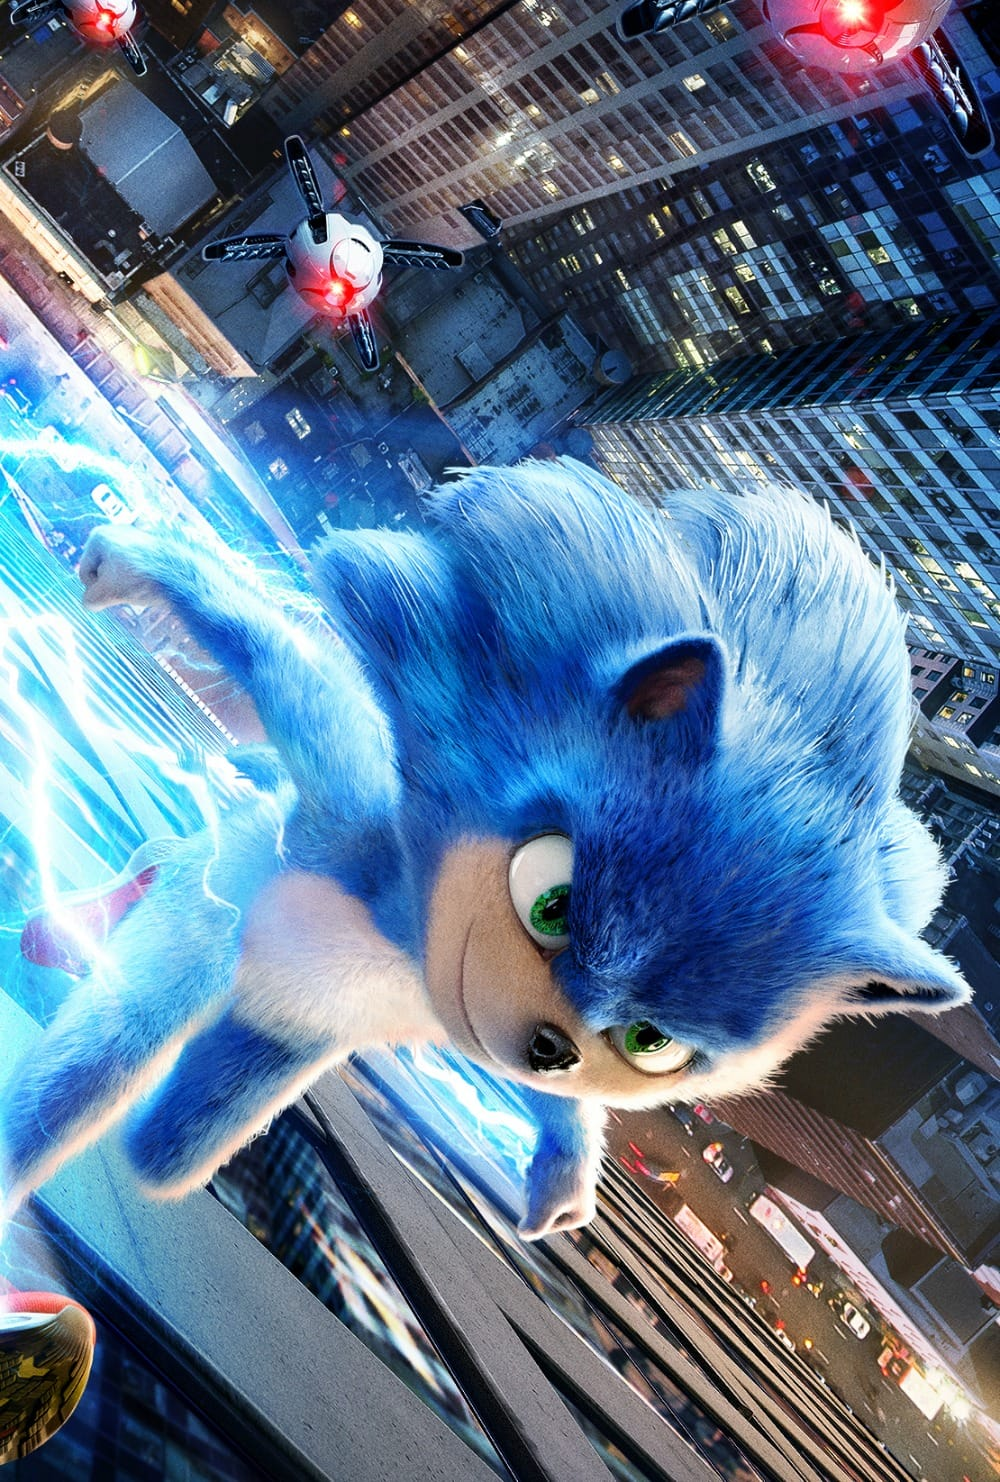 Sonic The Hedgehog Movie Trailer And News A Magical Mess